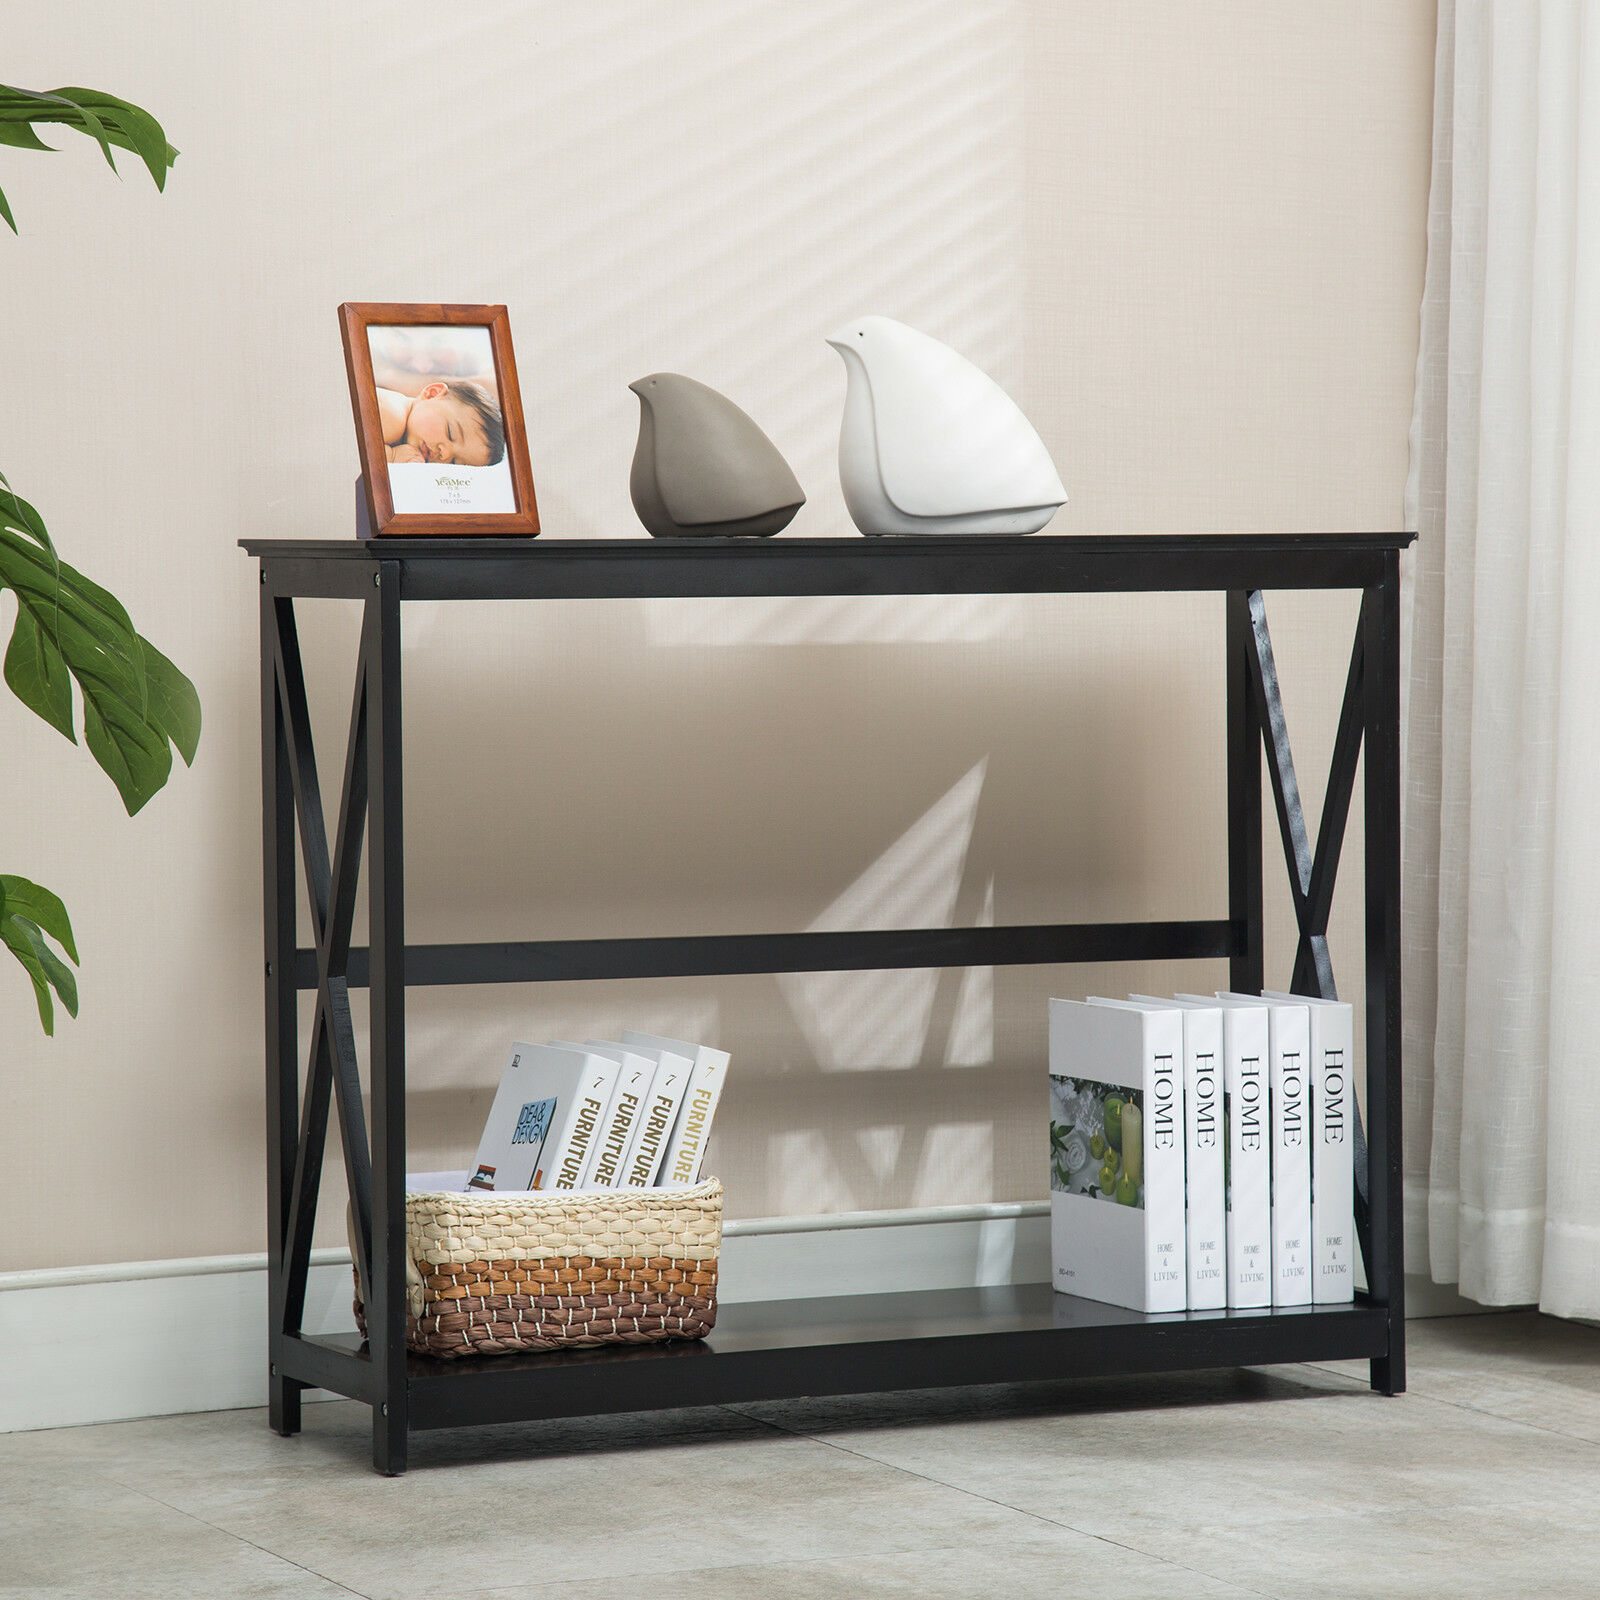 premium selection c096b 9f253 Details about 2 Tiers Black Console Table Accent Tables with Storage Shelf  Hallway Furniture